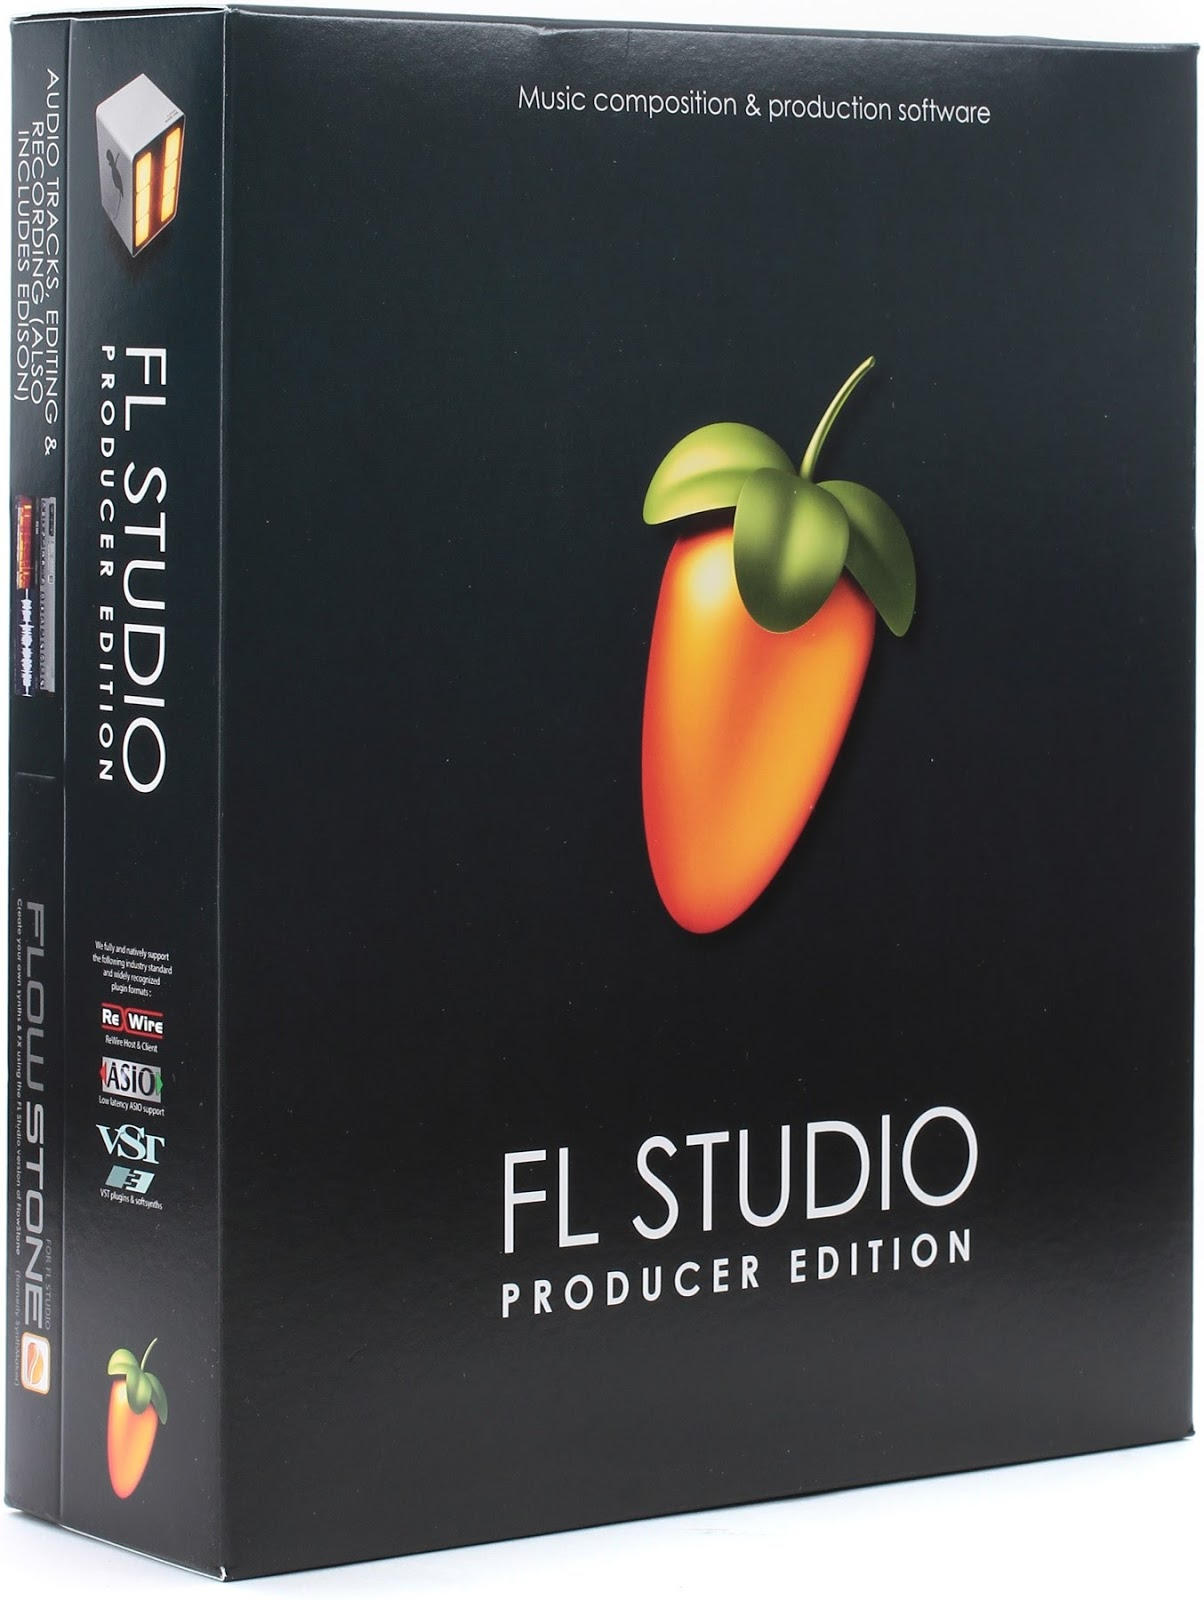 FL Studio 11.1.1 CRACK with Product Keys Image